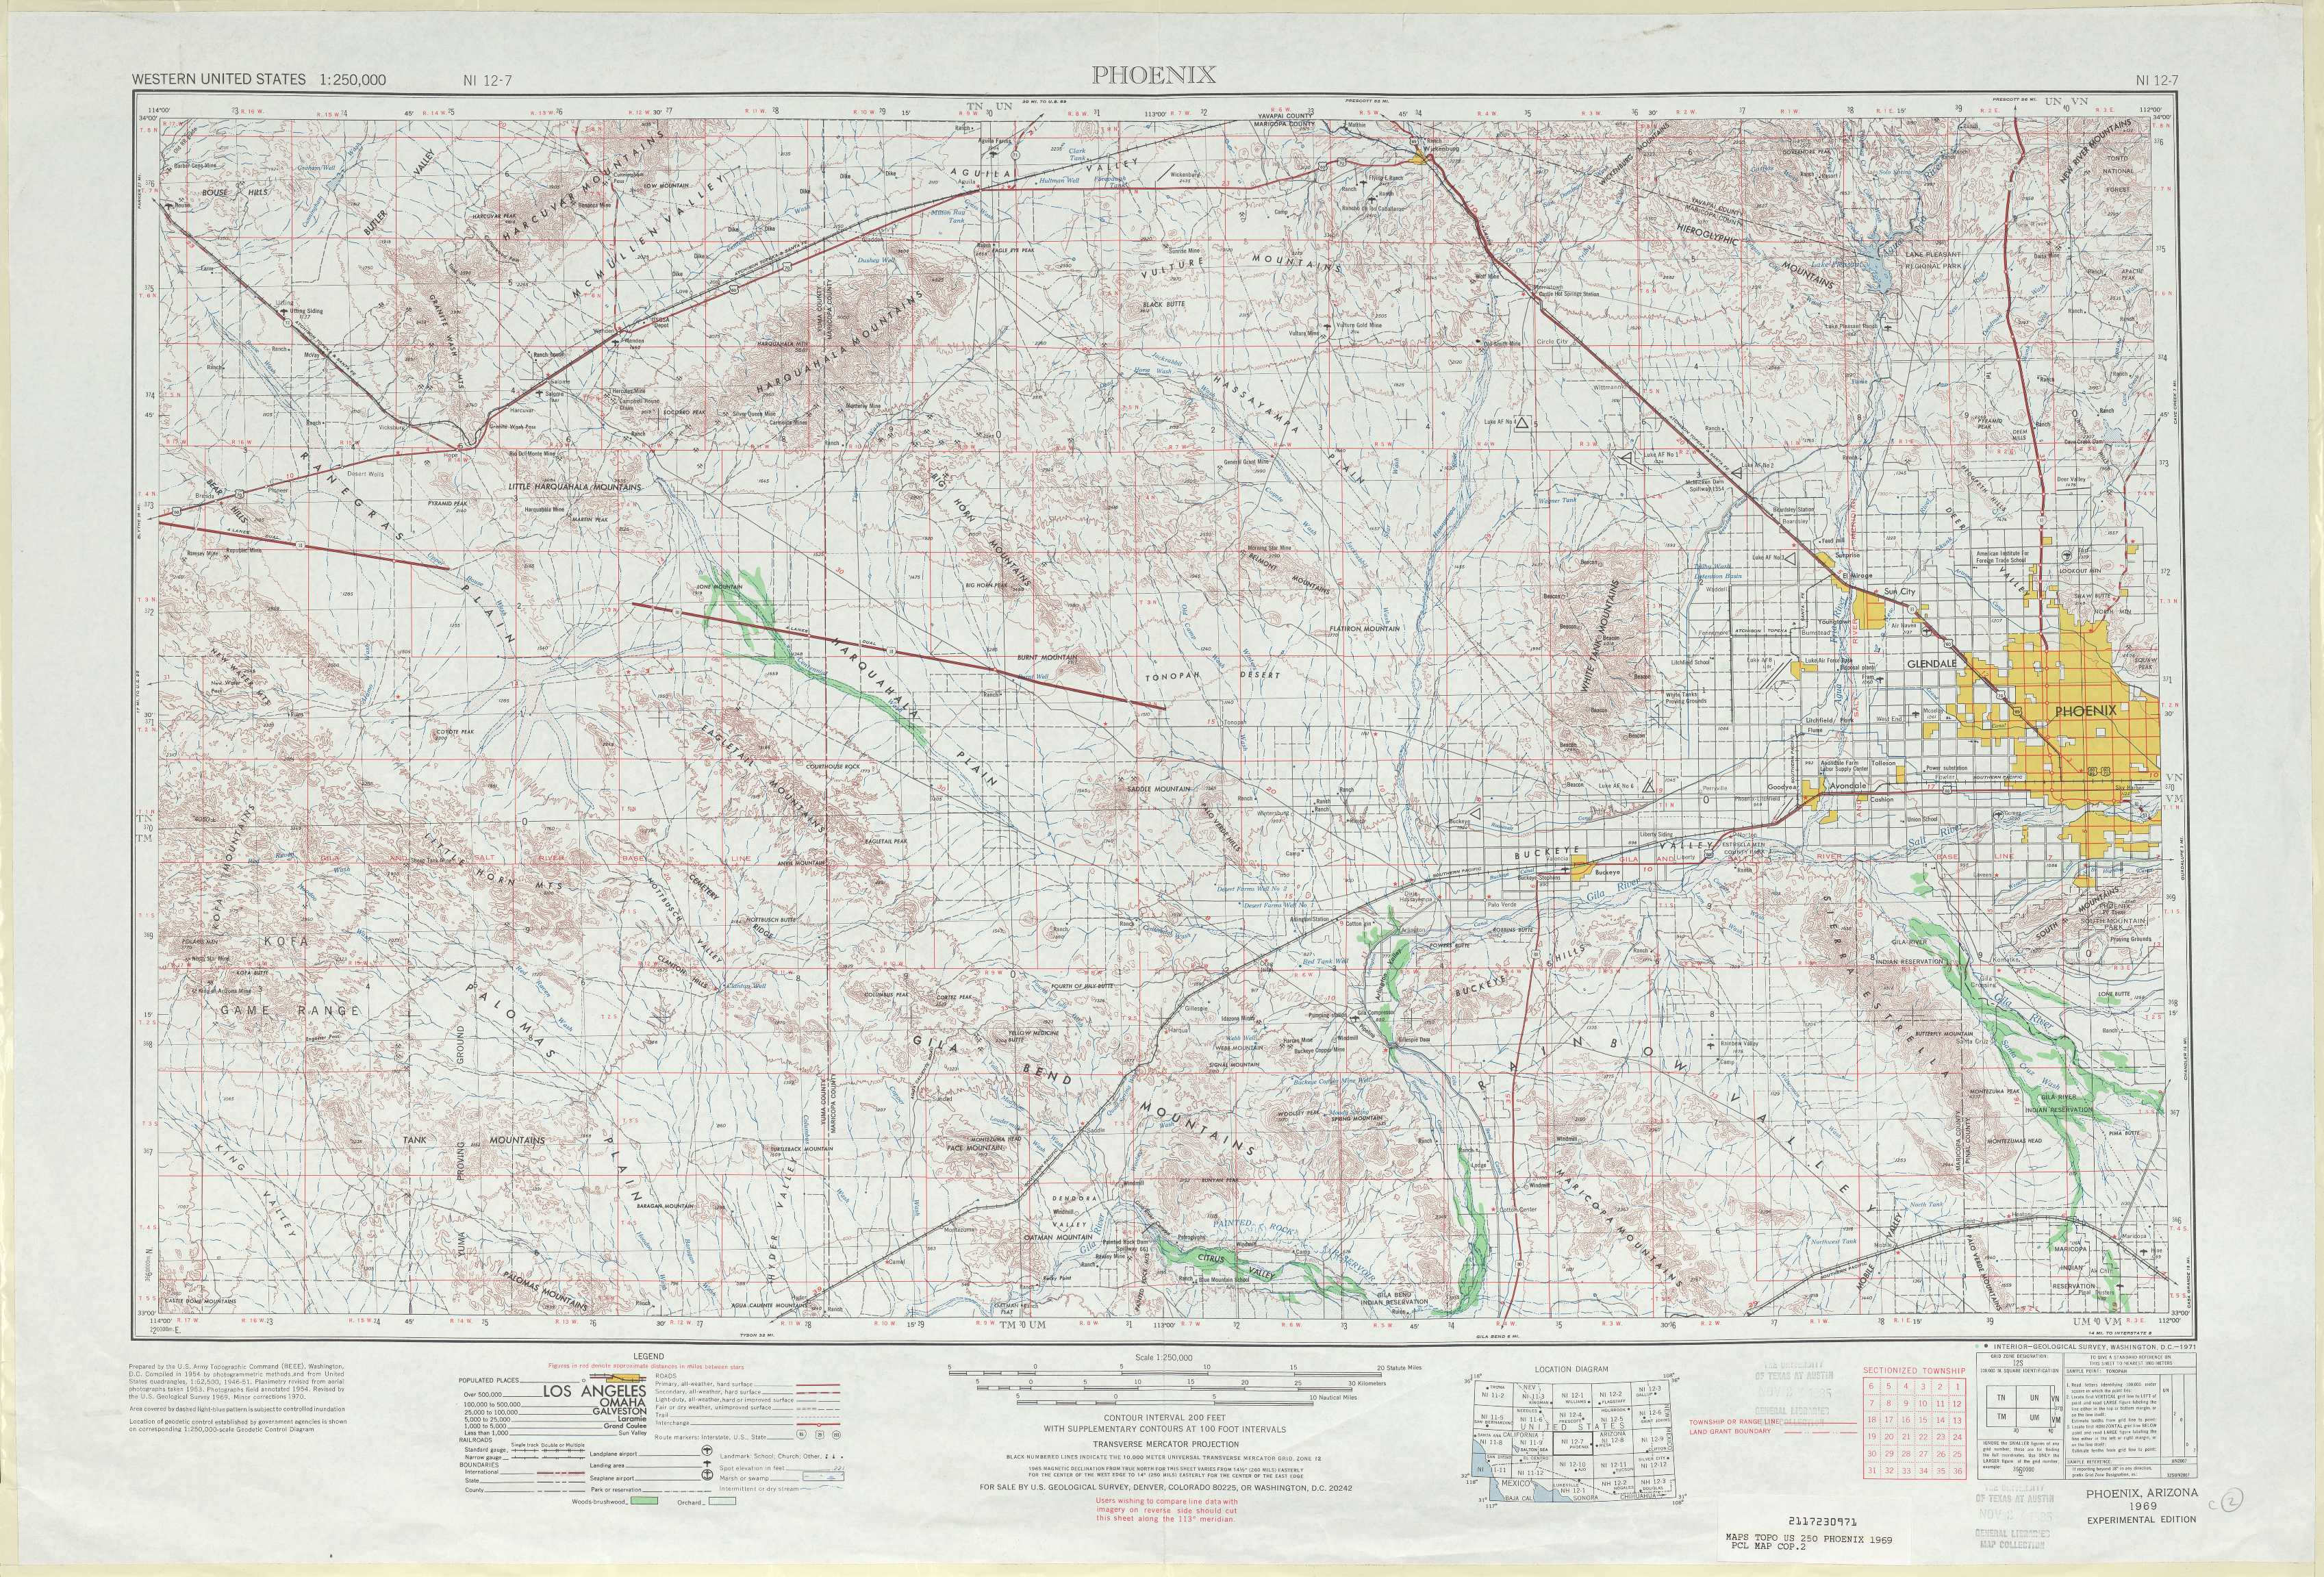 Phoenix topographic maps AZ USGS Topo Quad 33112a1 at 1250000